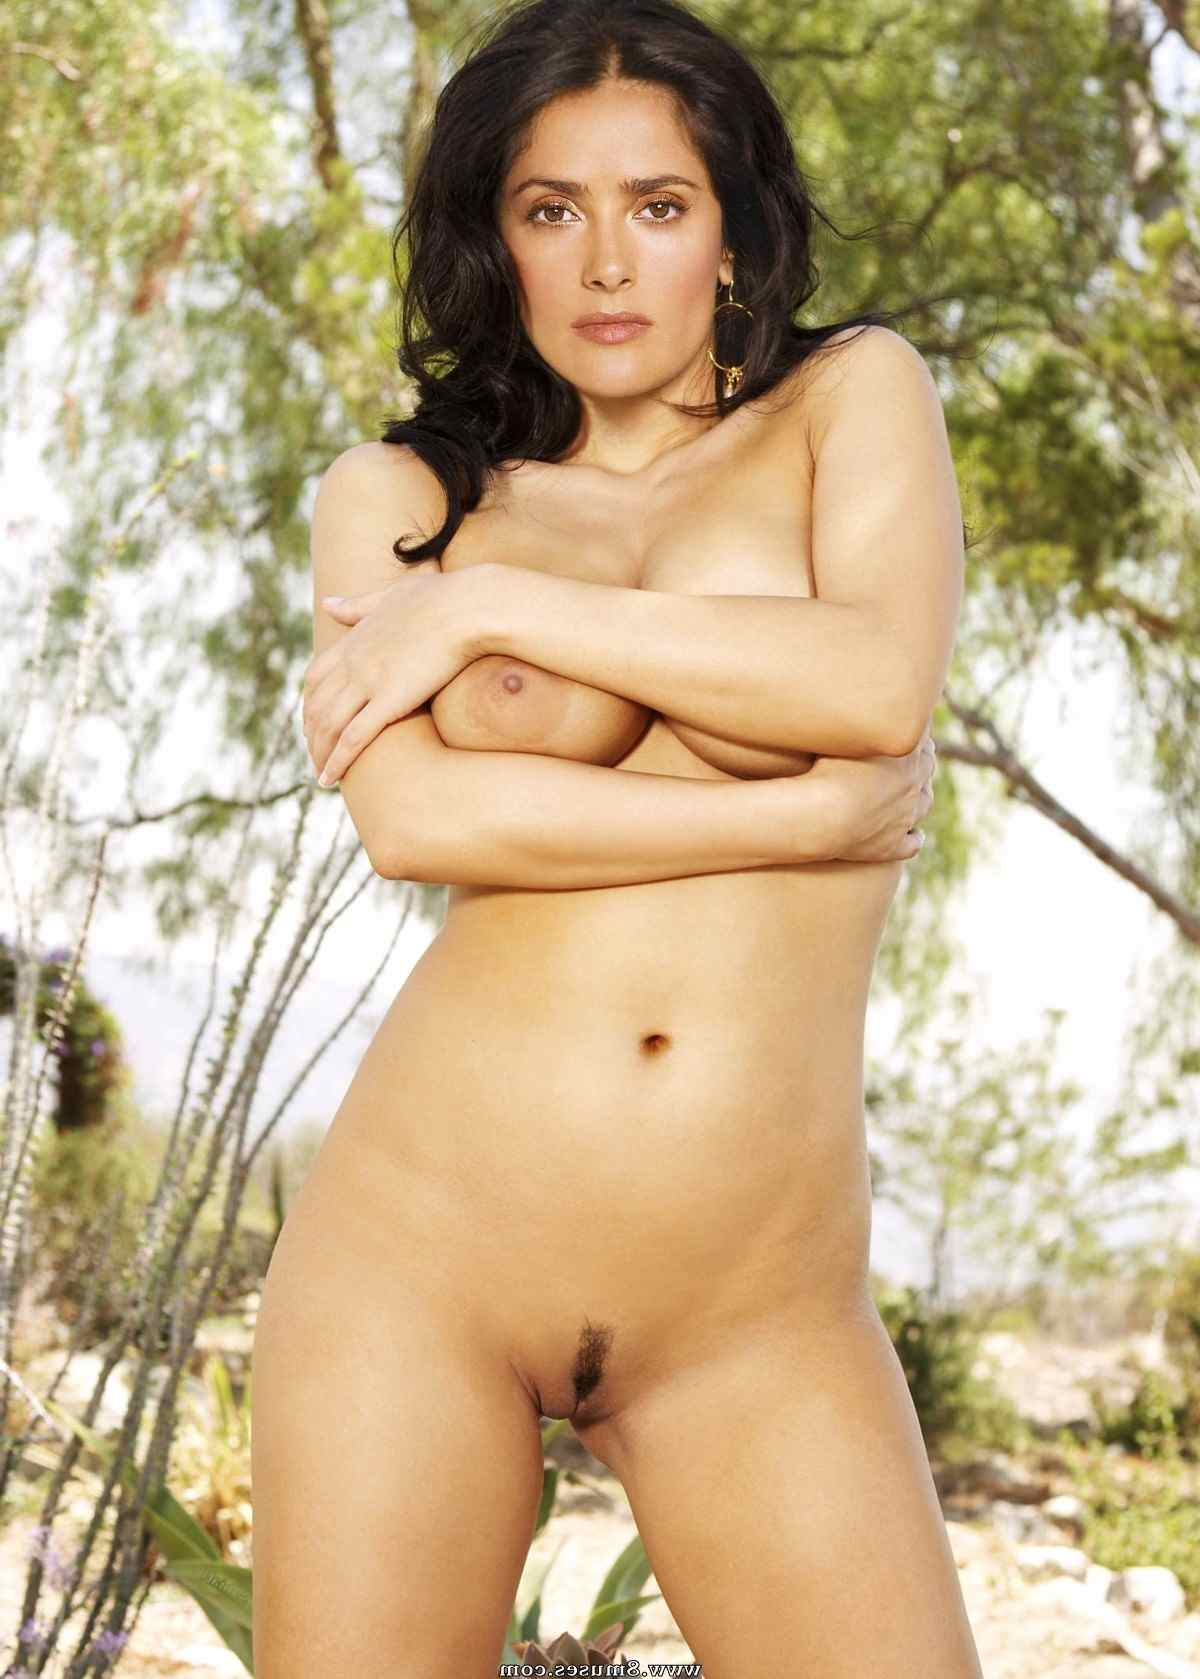 Fake-Celebrities-Sex-Pictures/Salma-Hayek Salma_Hayek__8muses_-_Sex_and_Porn_Comics_86.jpg